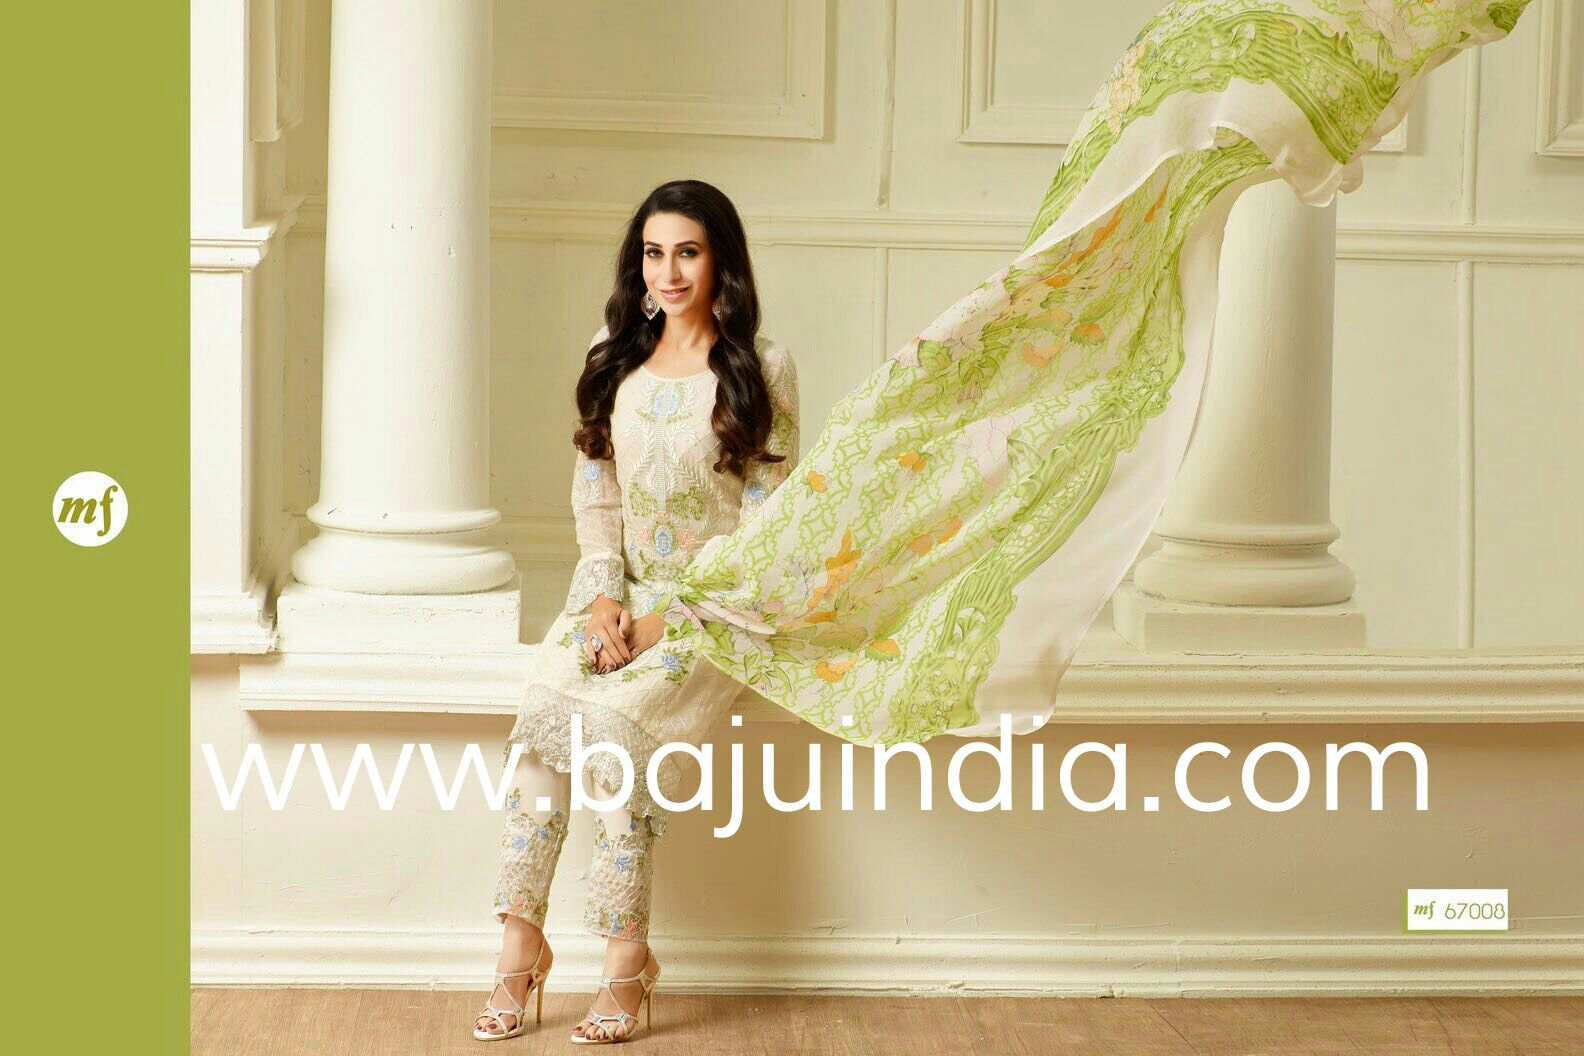 Baju India Muslim - Baju India Modern - Baju Khas India - Baju Adat India - Sari India Terbaru - Sari India Muslim - Baju Kerajaan India - Baju Salwaar India – MF 67000